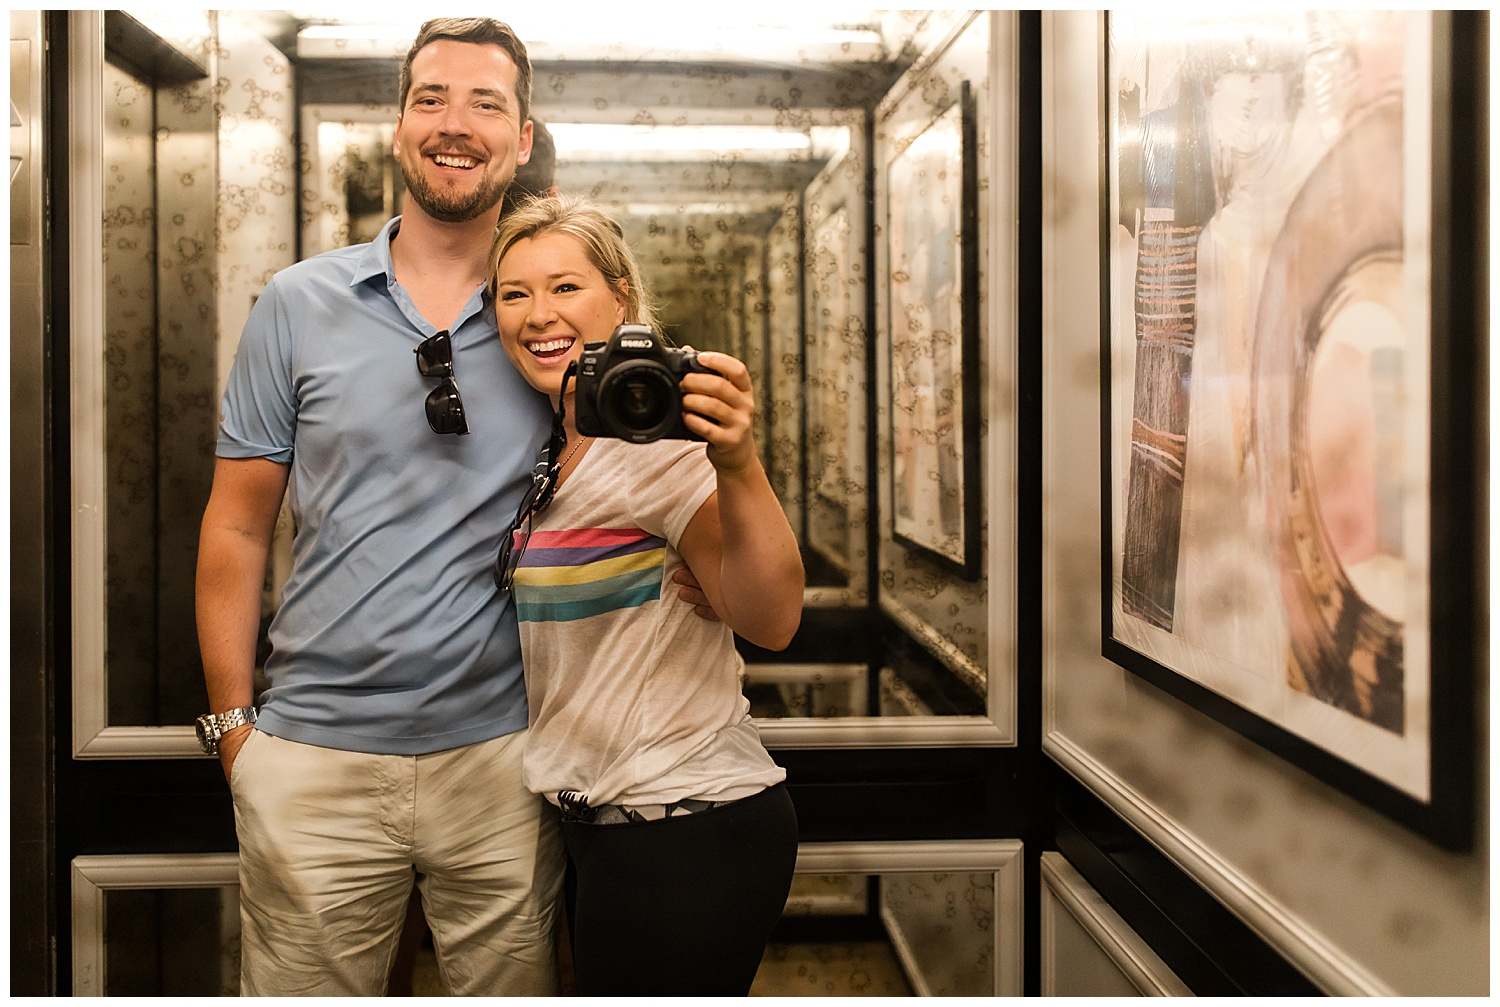 Elevator Selfie;) Stayed at Claridge House in the Gold Coast.